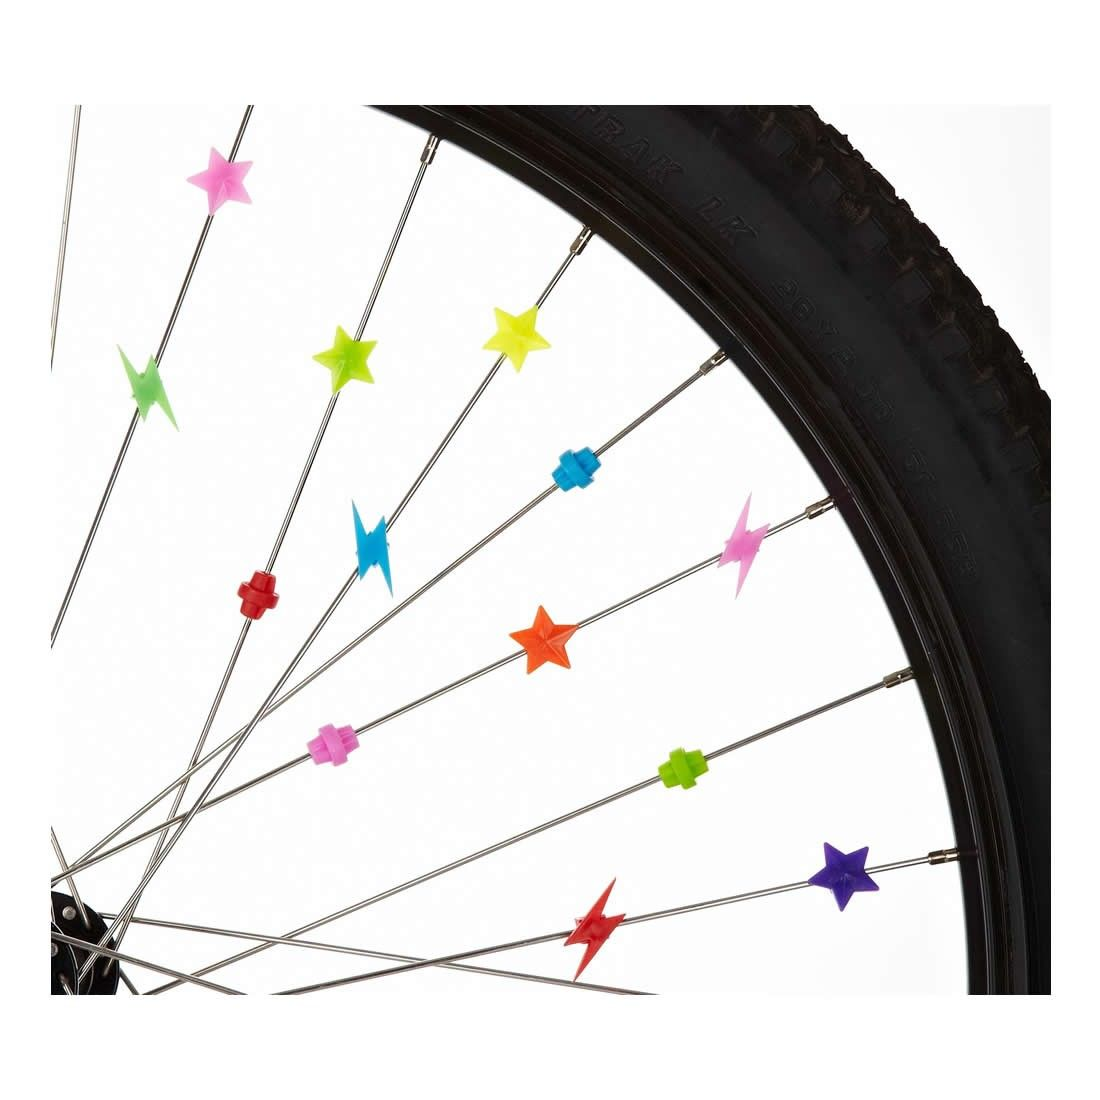 Multi Coloured Bike Wheel Spoke Beads Decors Spokey Decoration for All Cycle